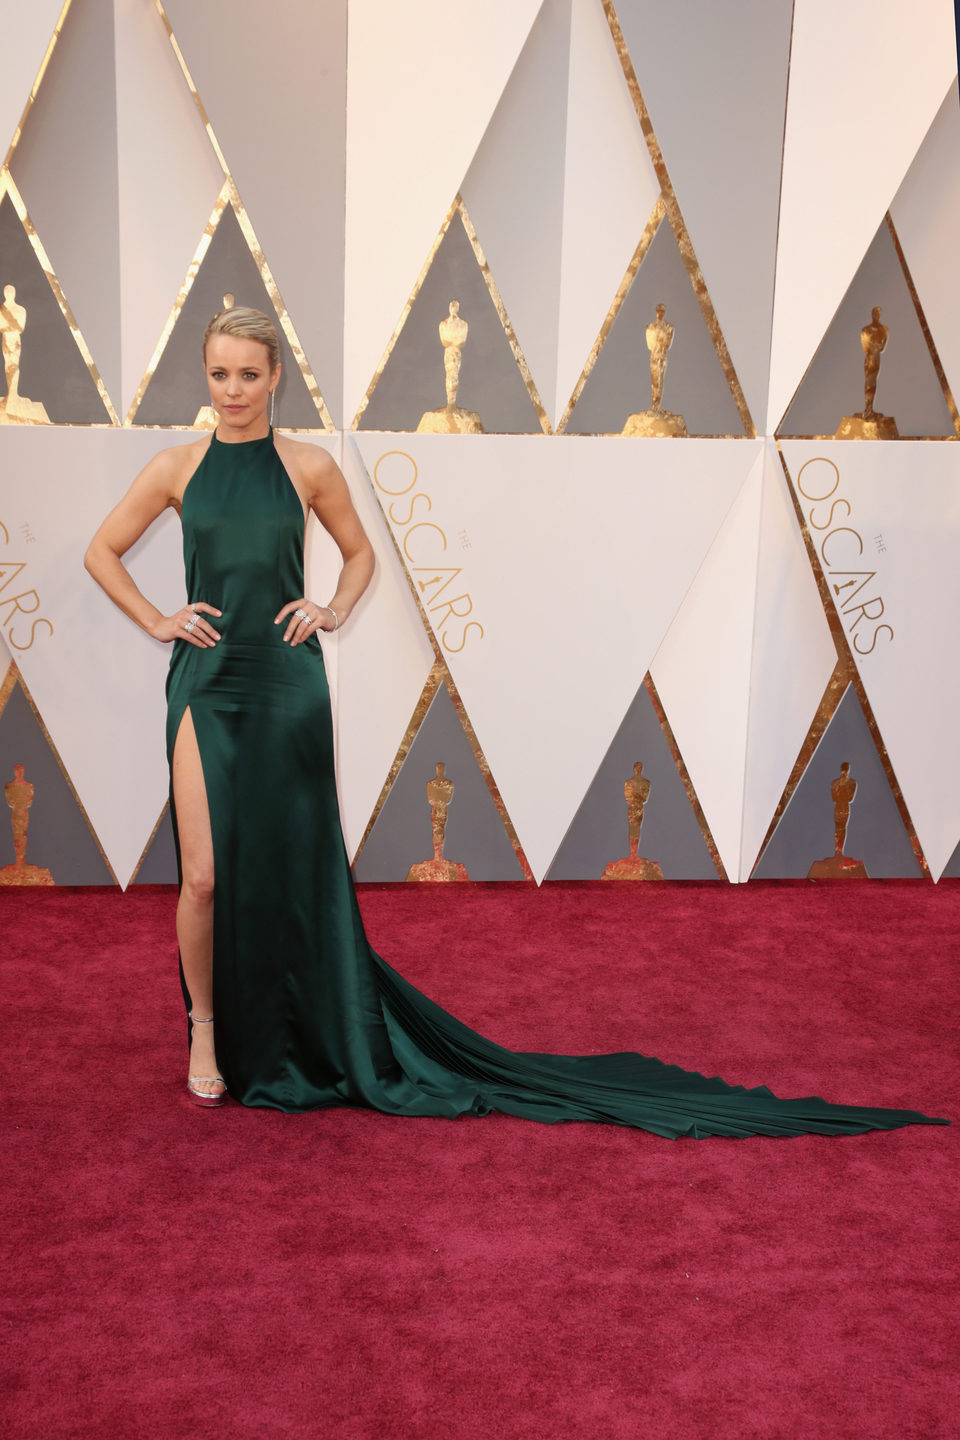 Rachel McAdams at the Oscars 2016 red carpet